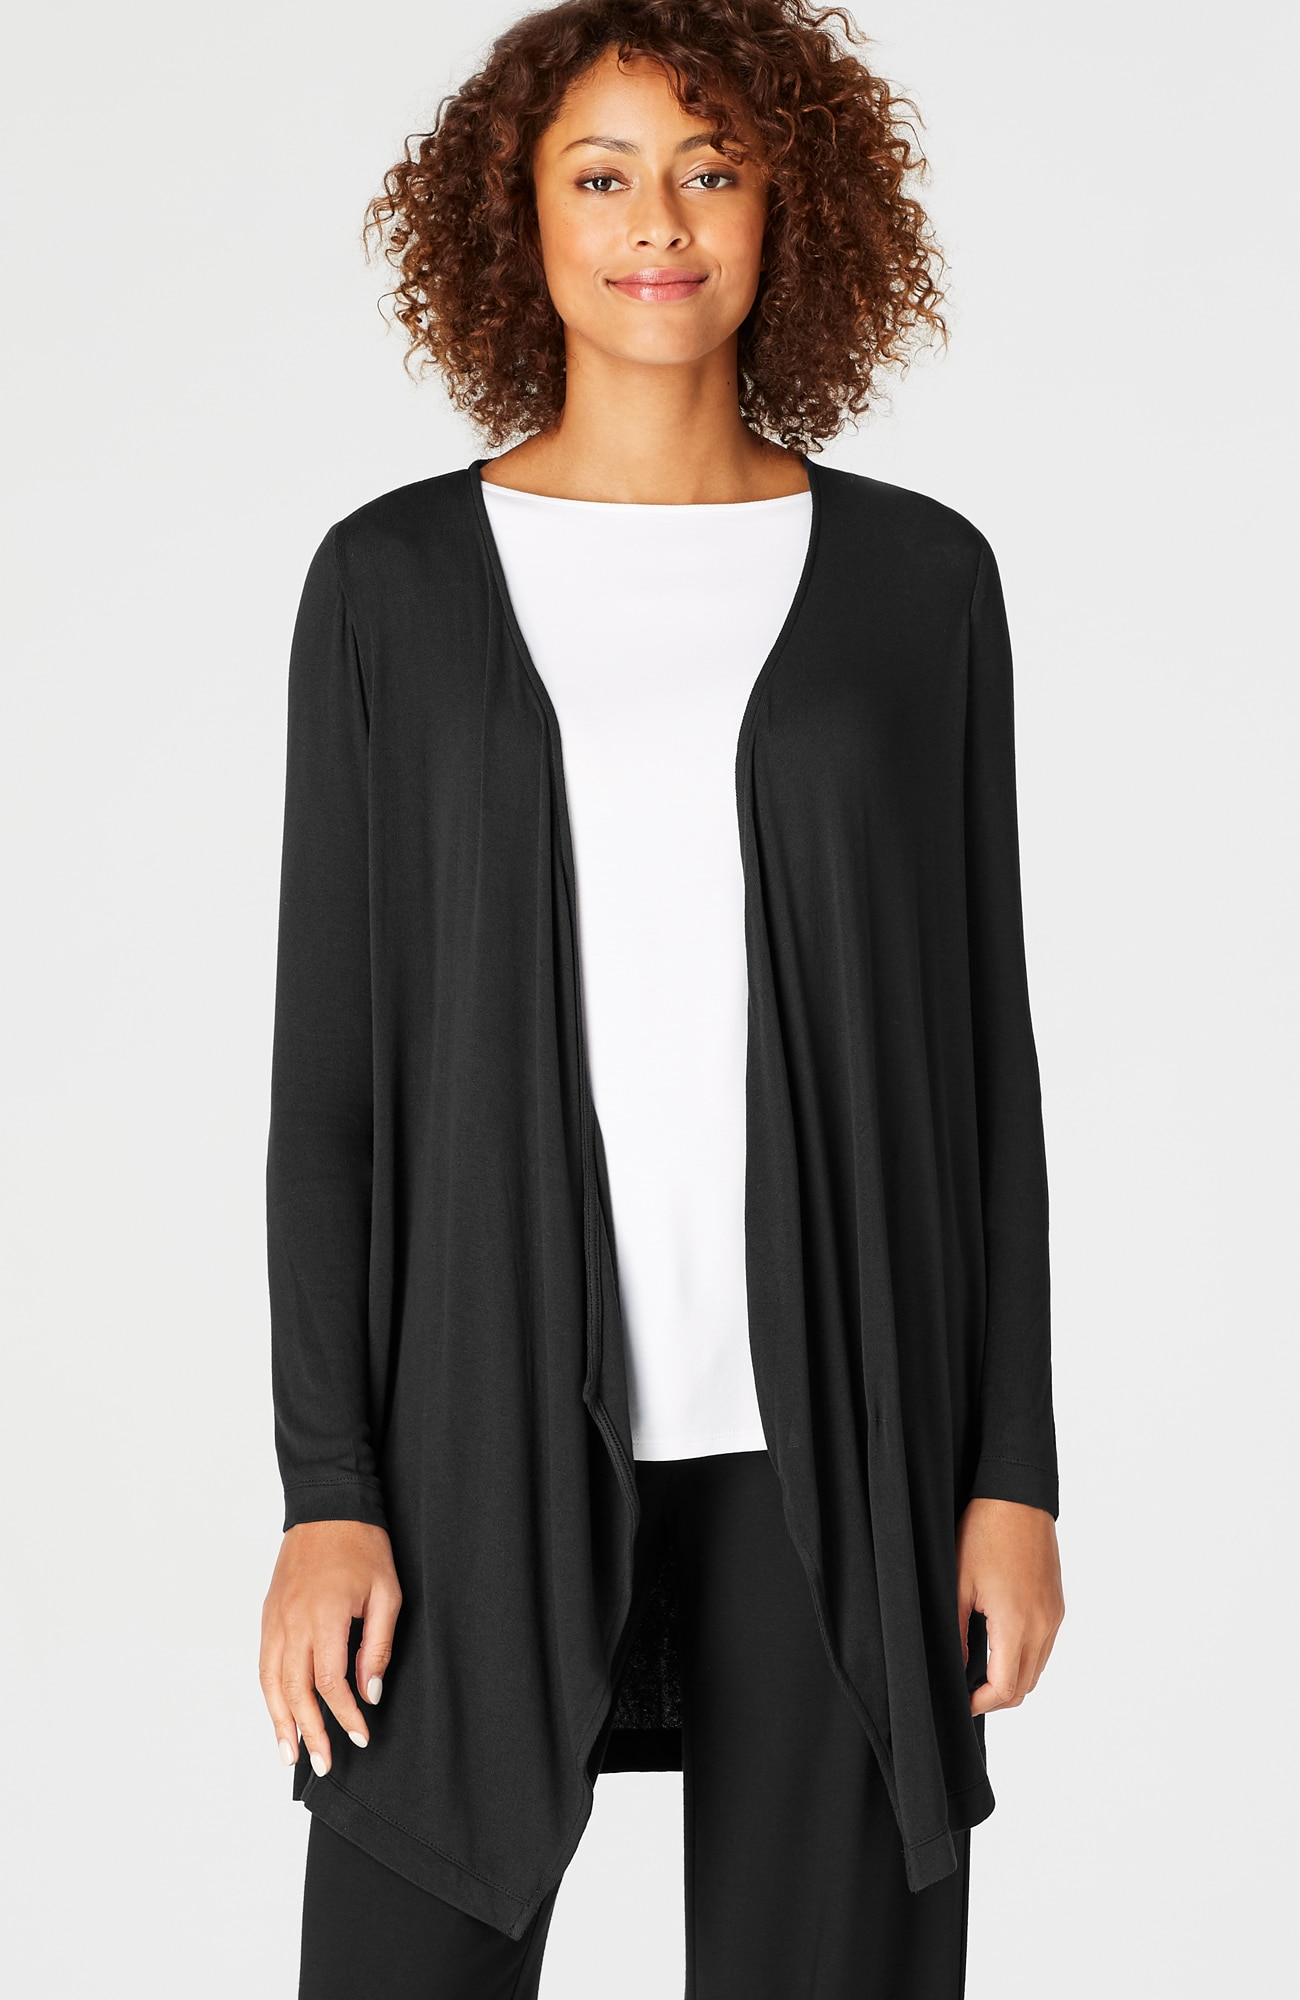 Wearever ultrafine draped cardi